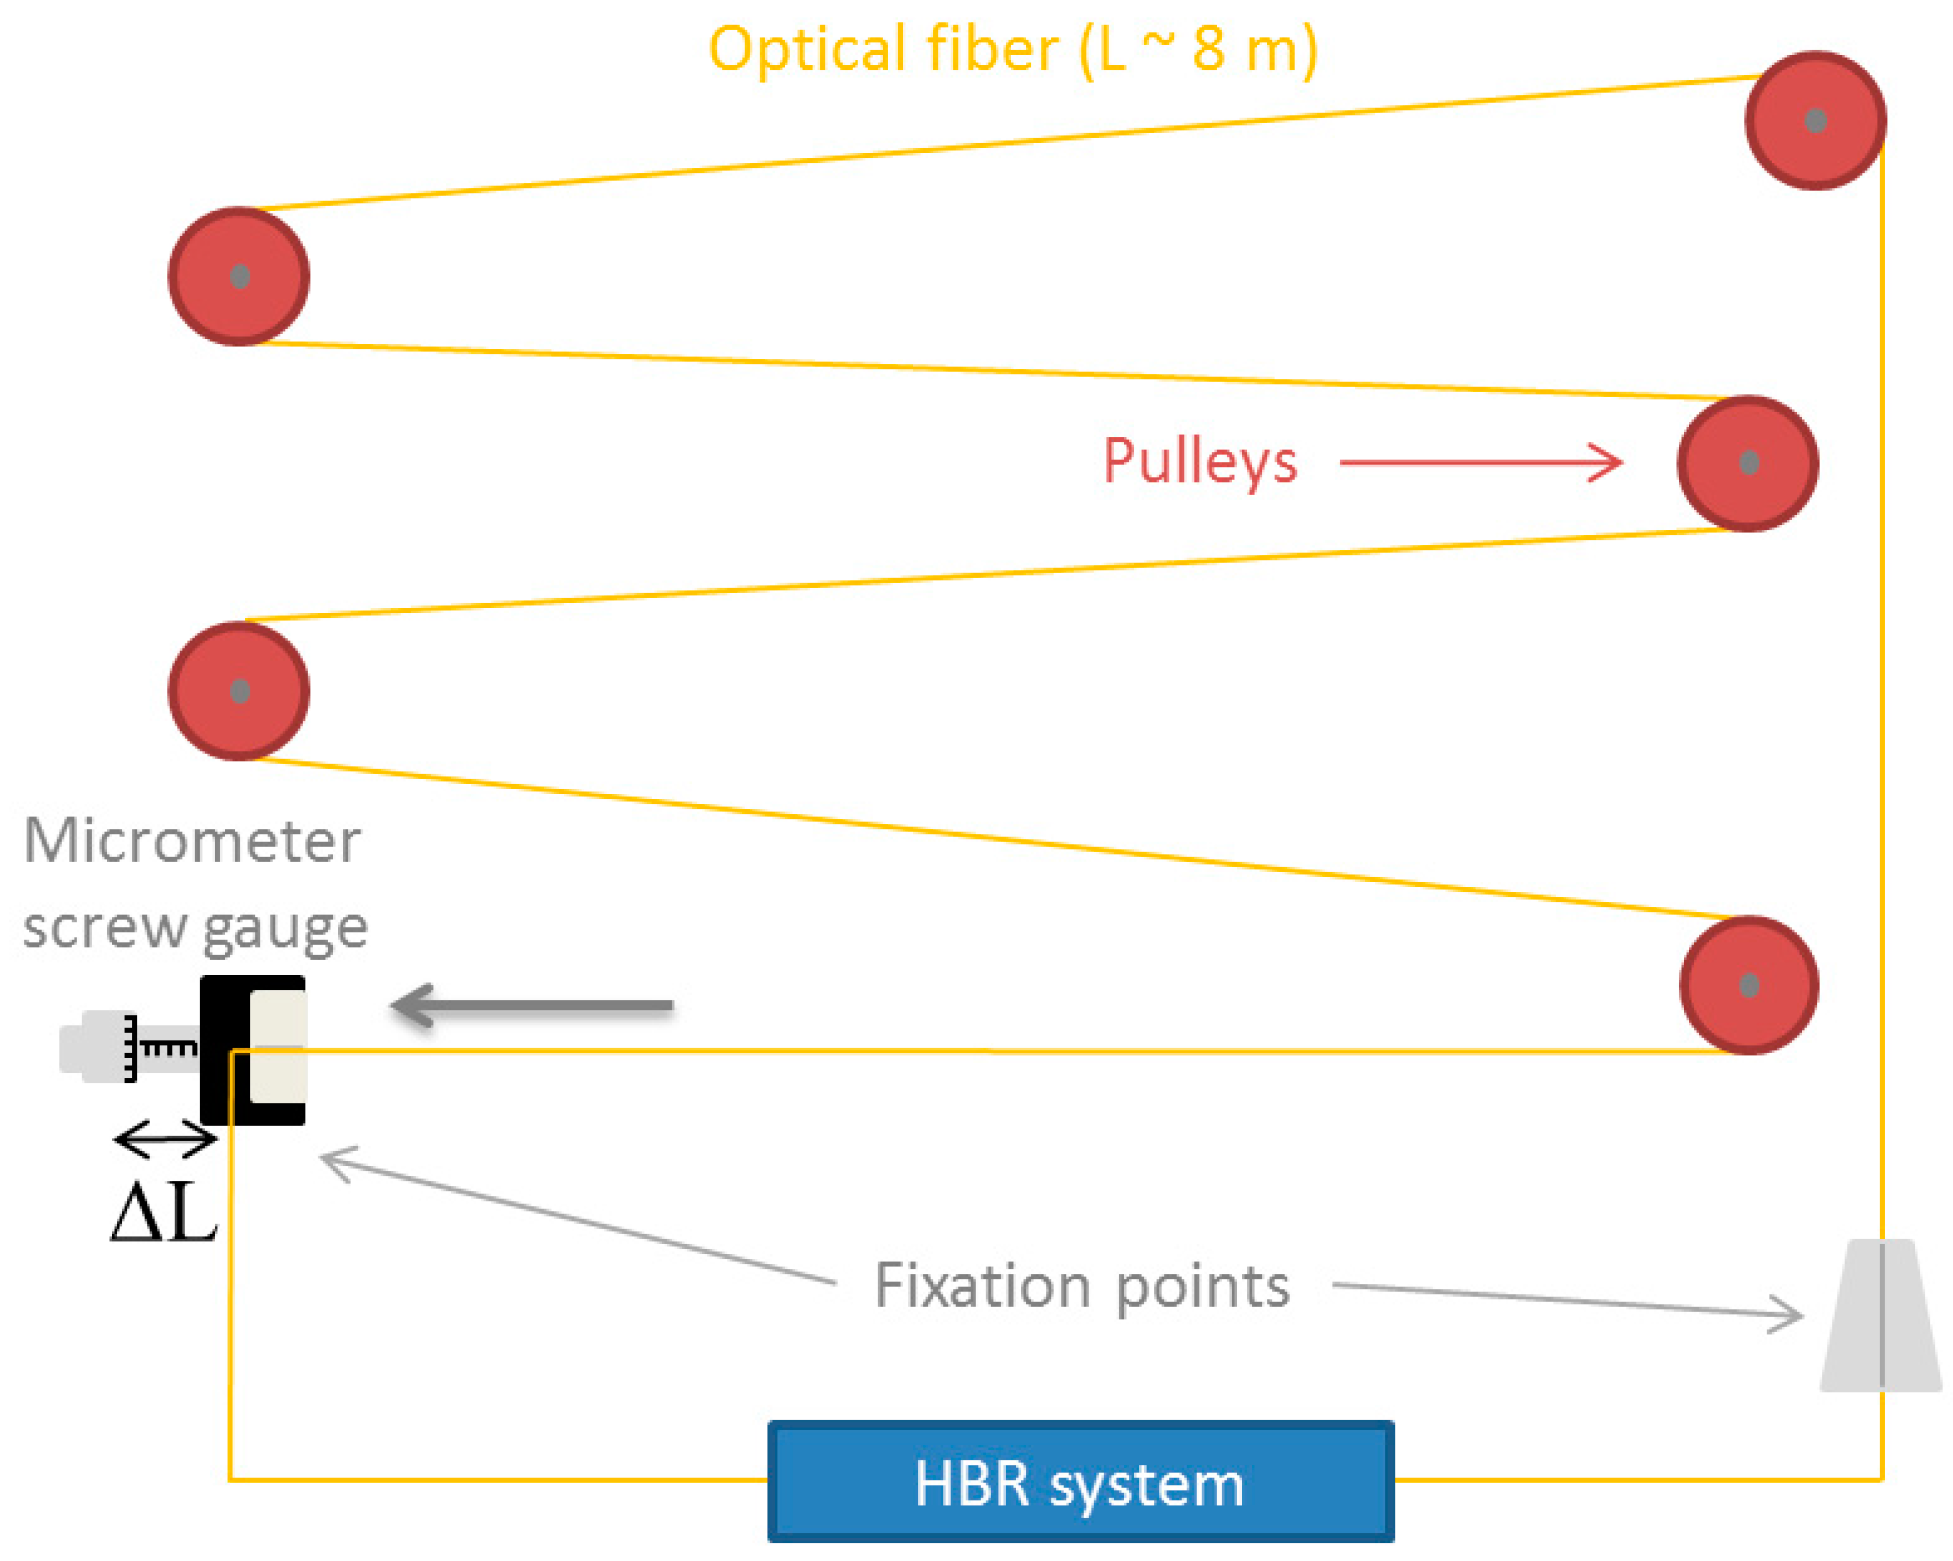 thesis on optical communication What are some good topics for a master's thesis in optical communication and wireless engineering what are good topics on optical communication for an mtech thesis.